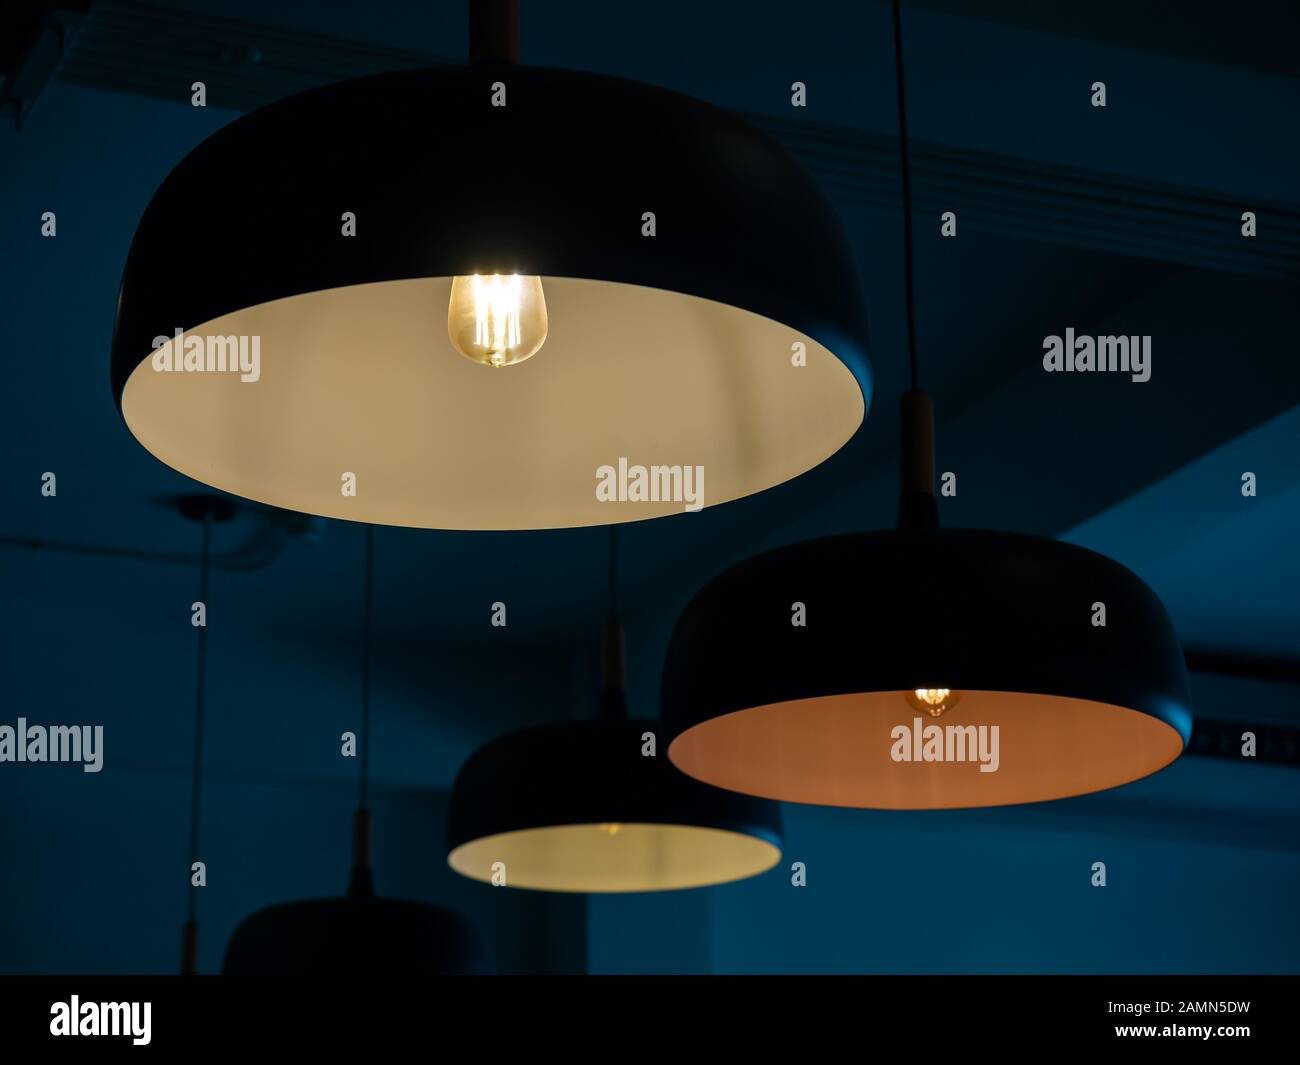 Beautiful Round Modern Ceiling Lamps With Light Bulbs In Dark Blue Room Background Stock Photo Alamy